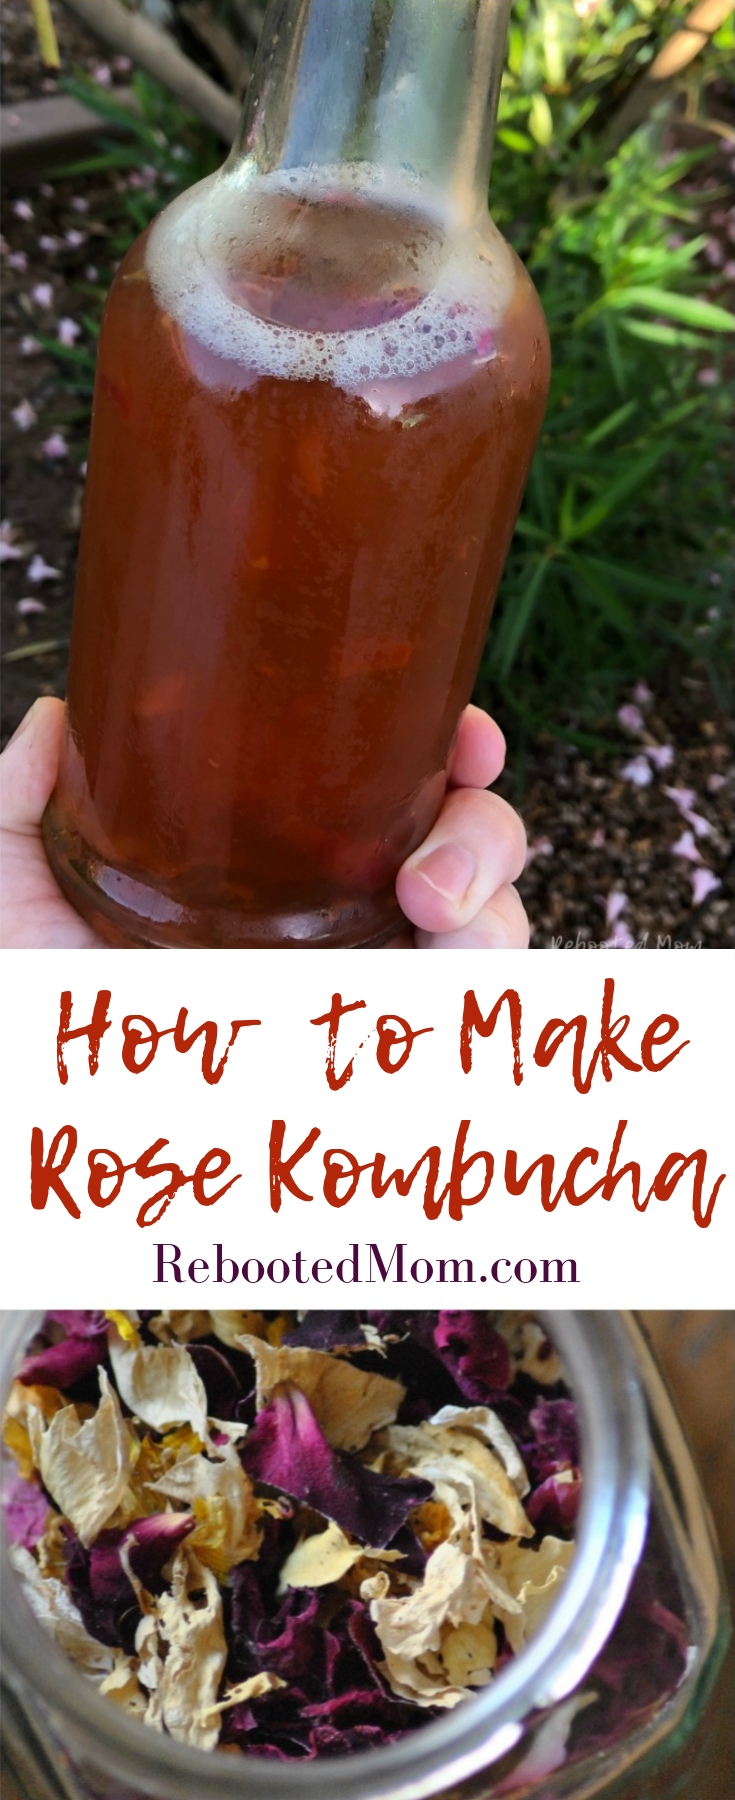 Rose Kombucha is a wonderful, unique flavor for kombucha that's super easy to make! Learn how to second ferment your kombucha with this delicious flavor!